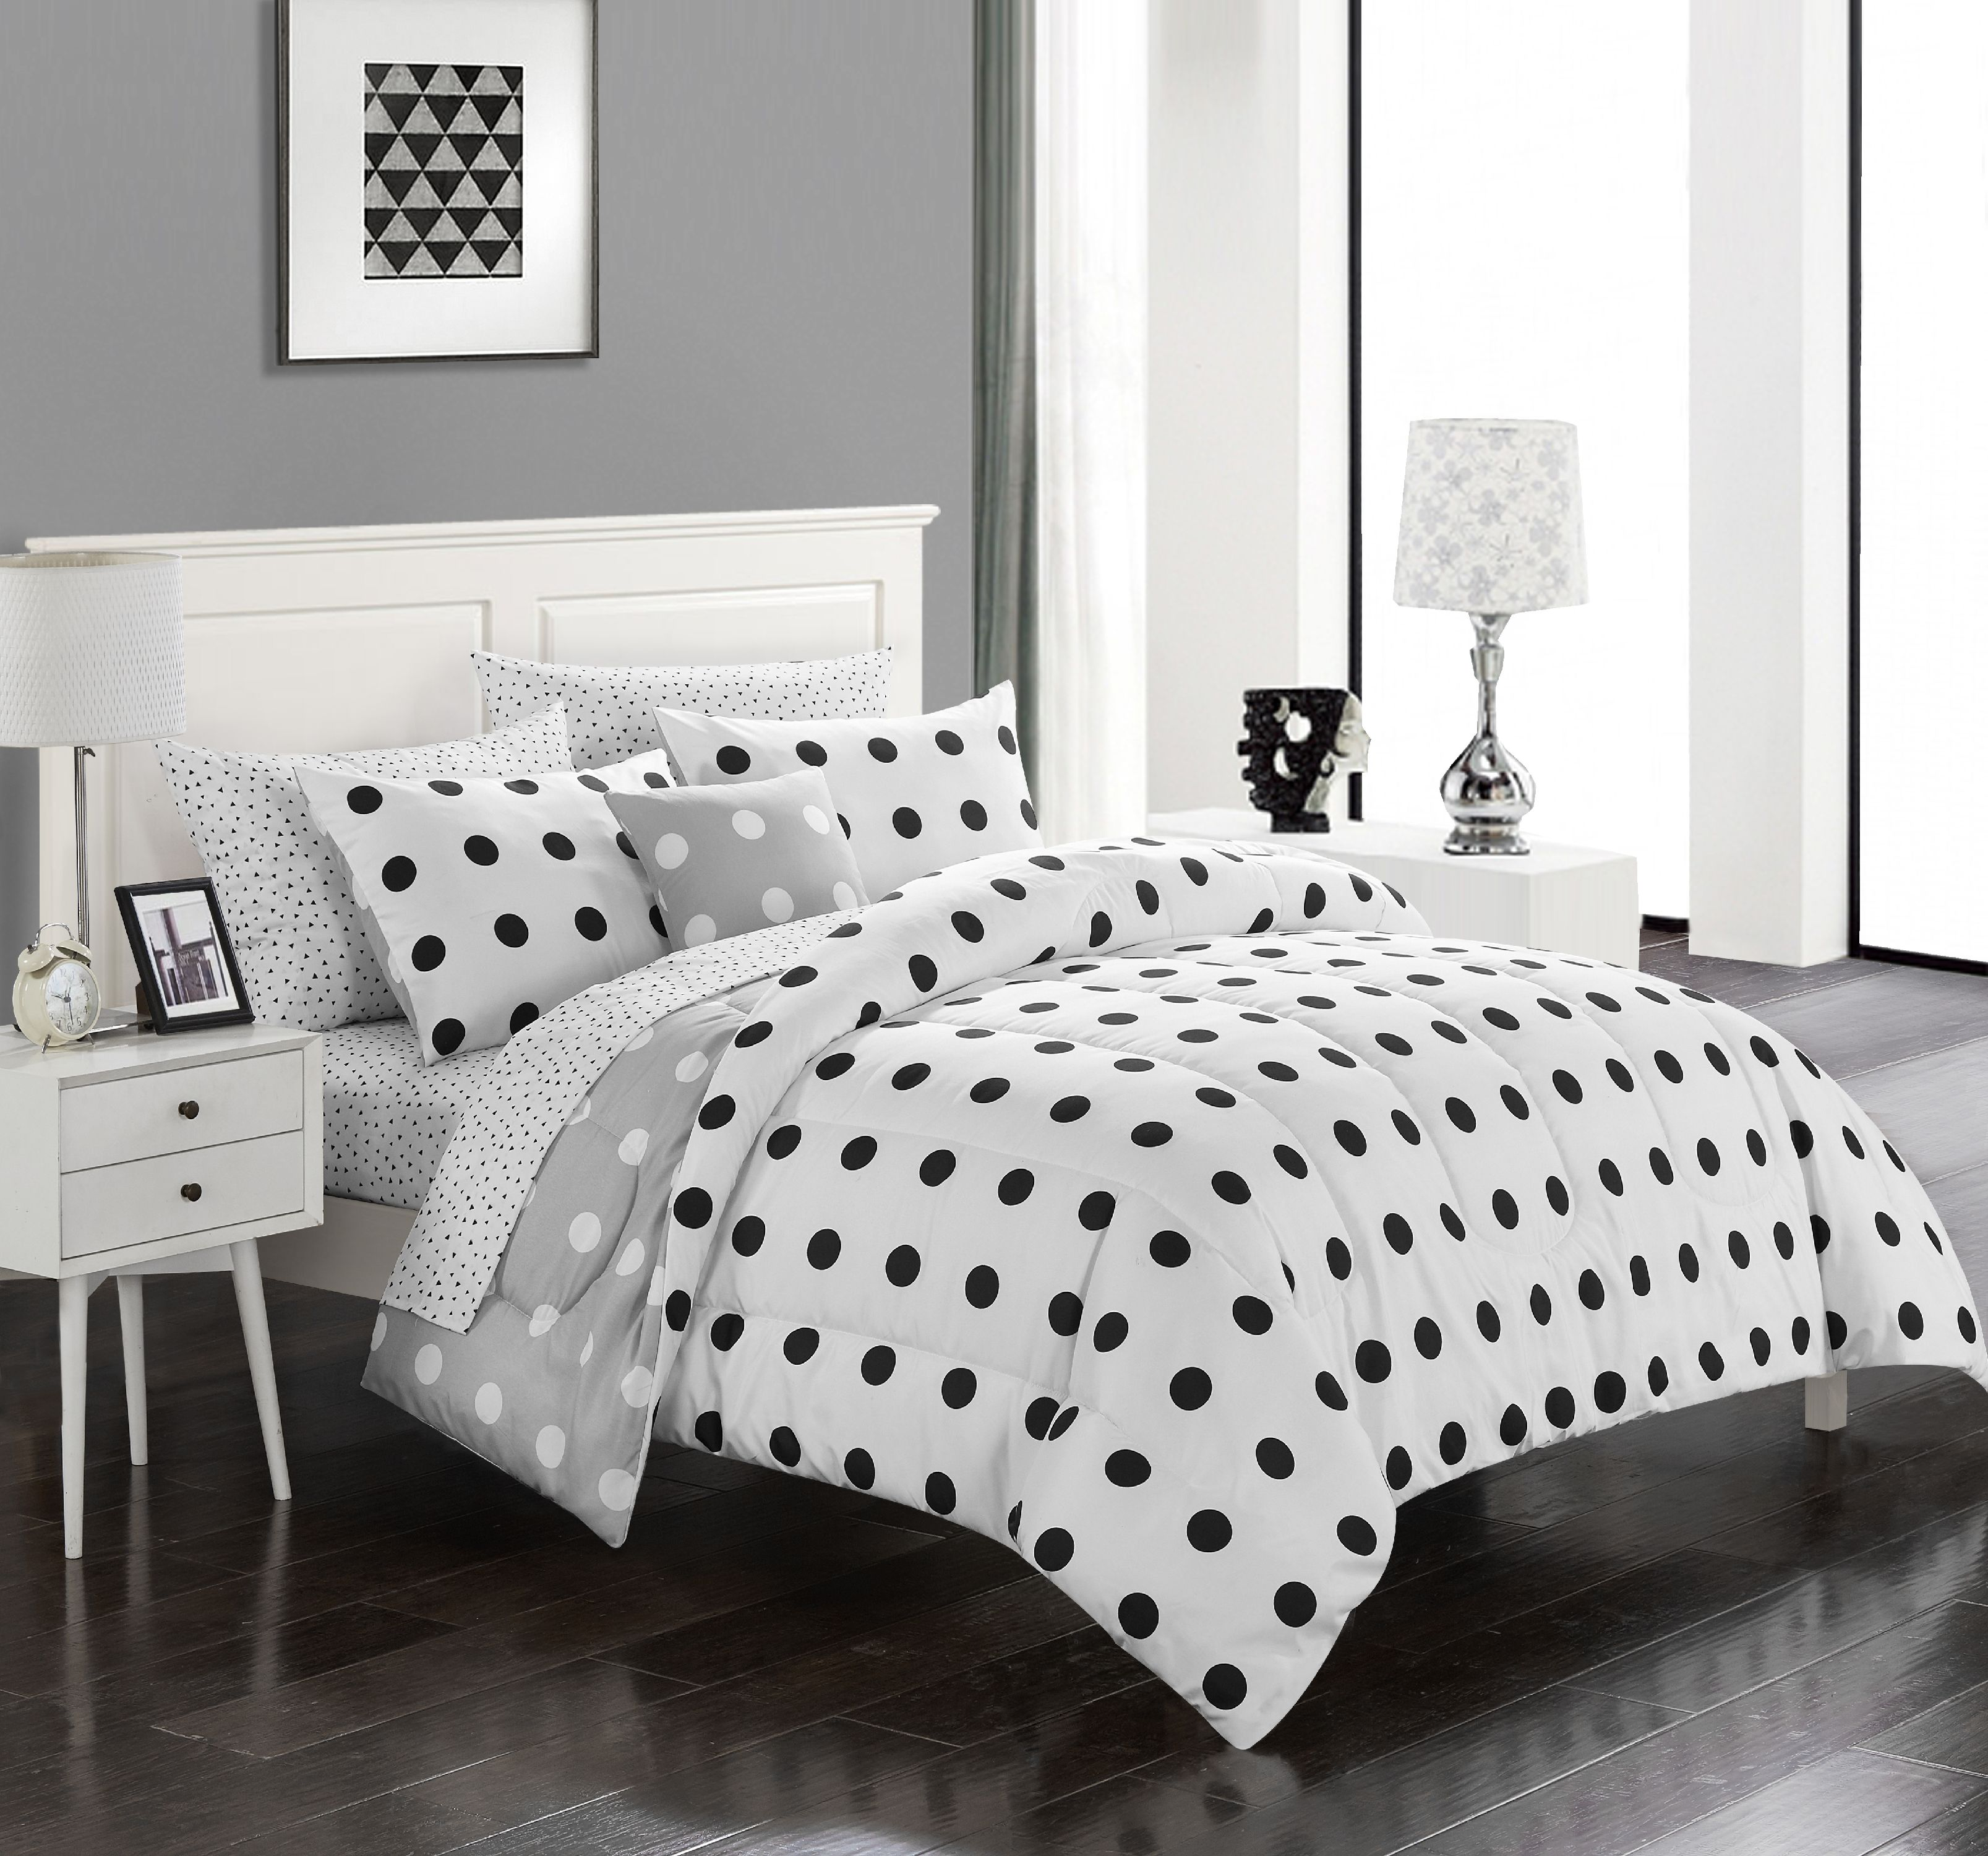 Mainstays Full Maggie Bed in a Bag Bedding Set, 6 Piece